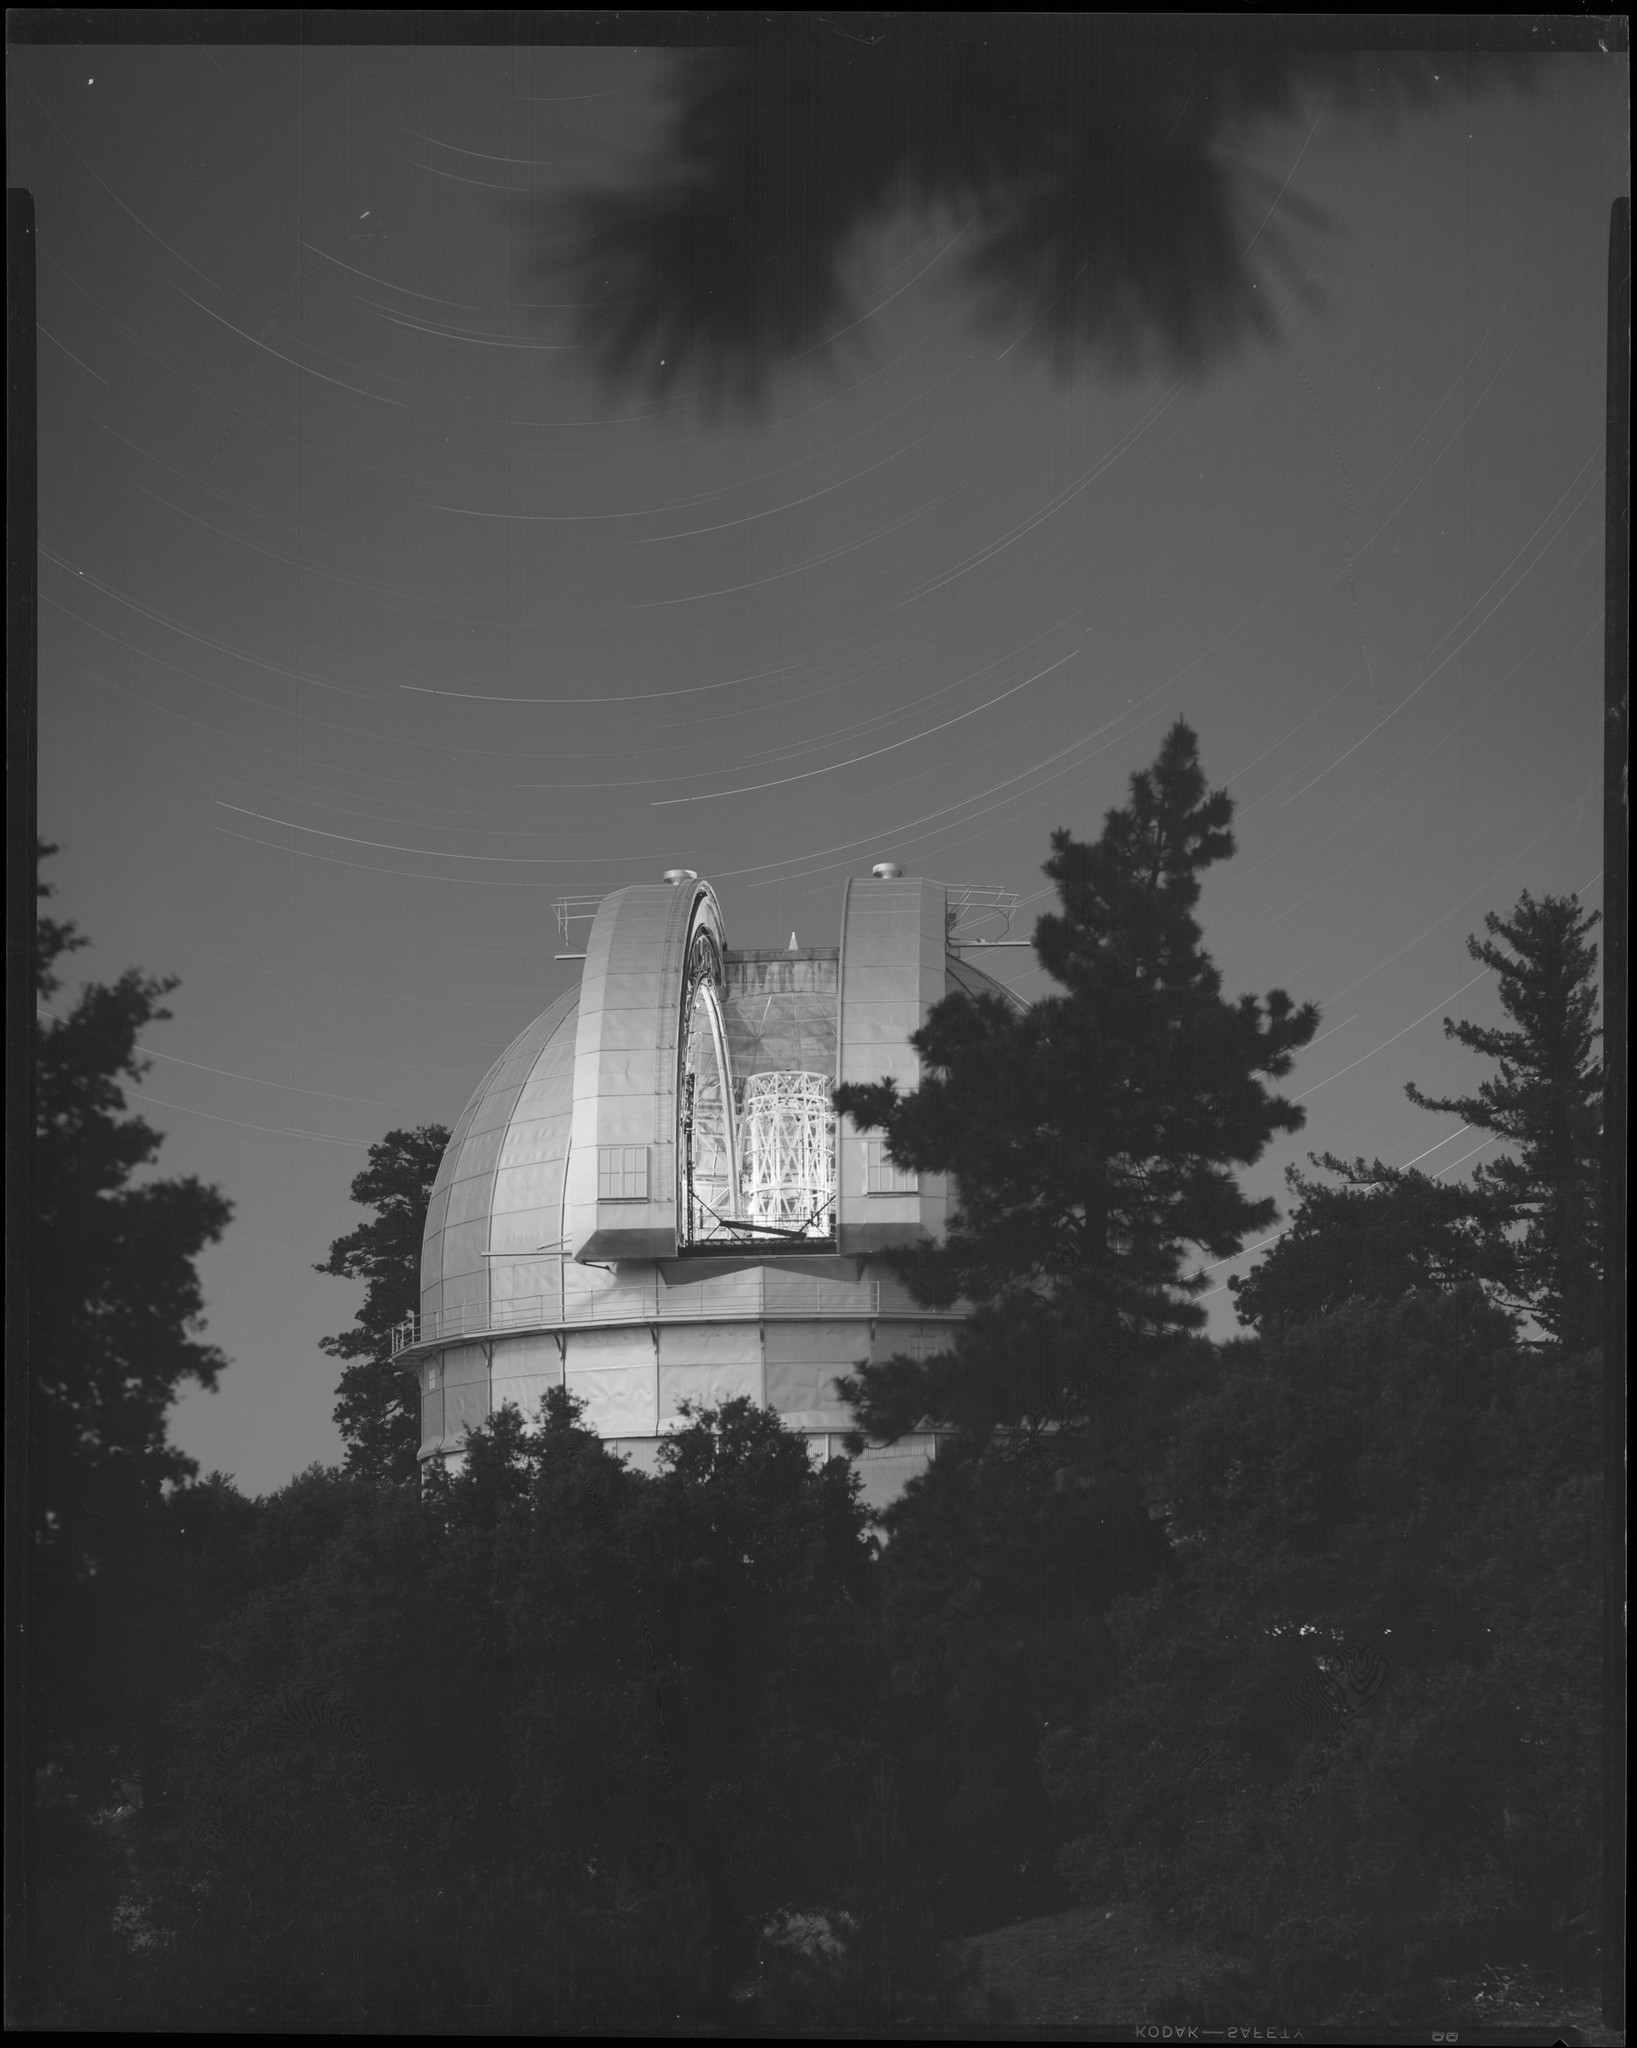 The 100-inch telescope dome at Mt. Wilson Observatory, seen in 1950.